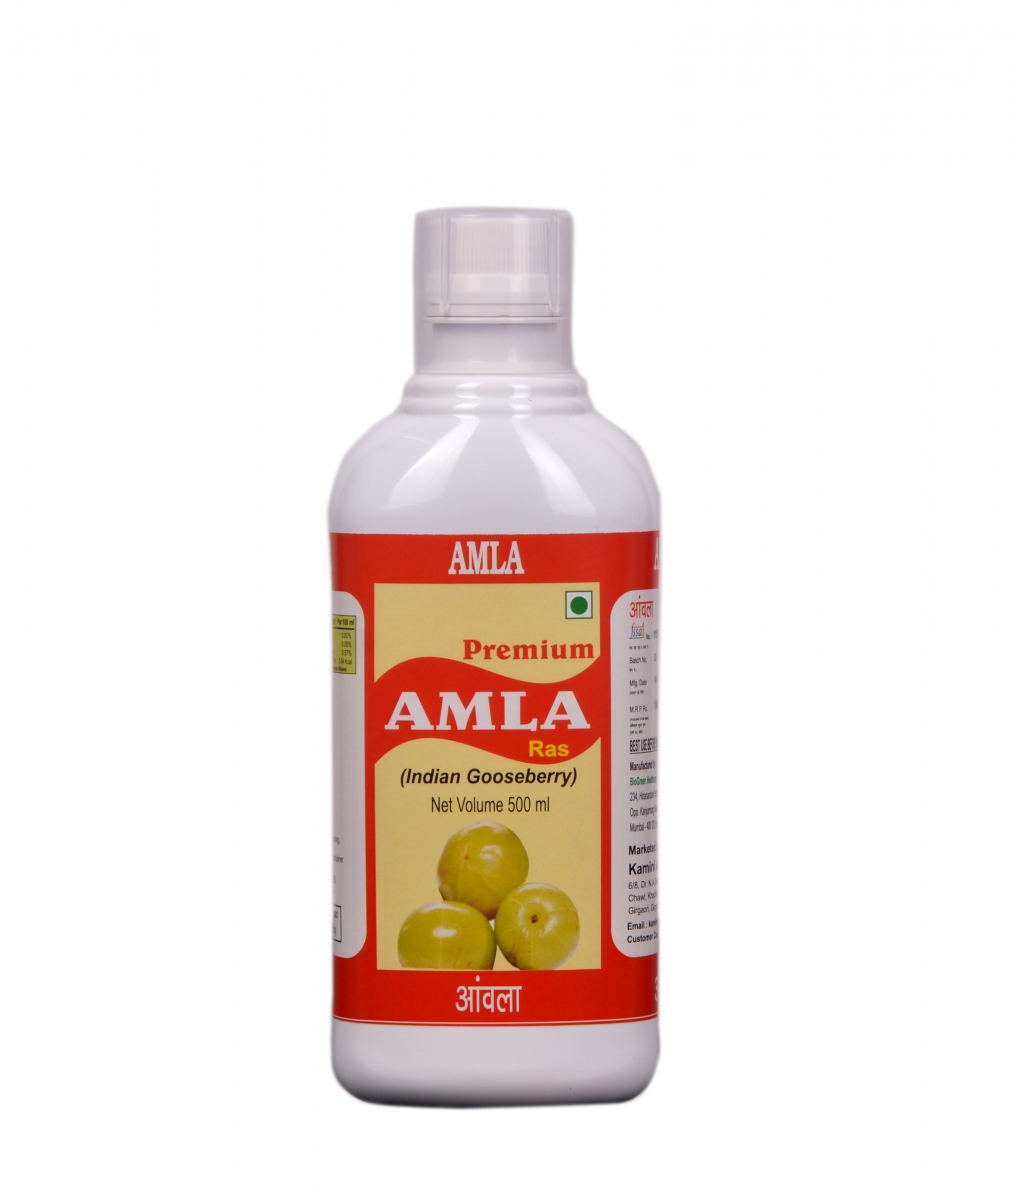 Premium Amla Ras In Raisen